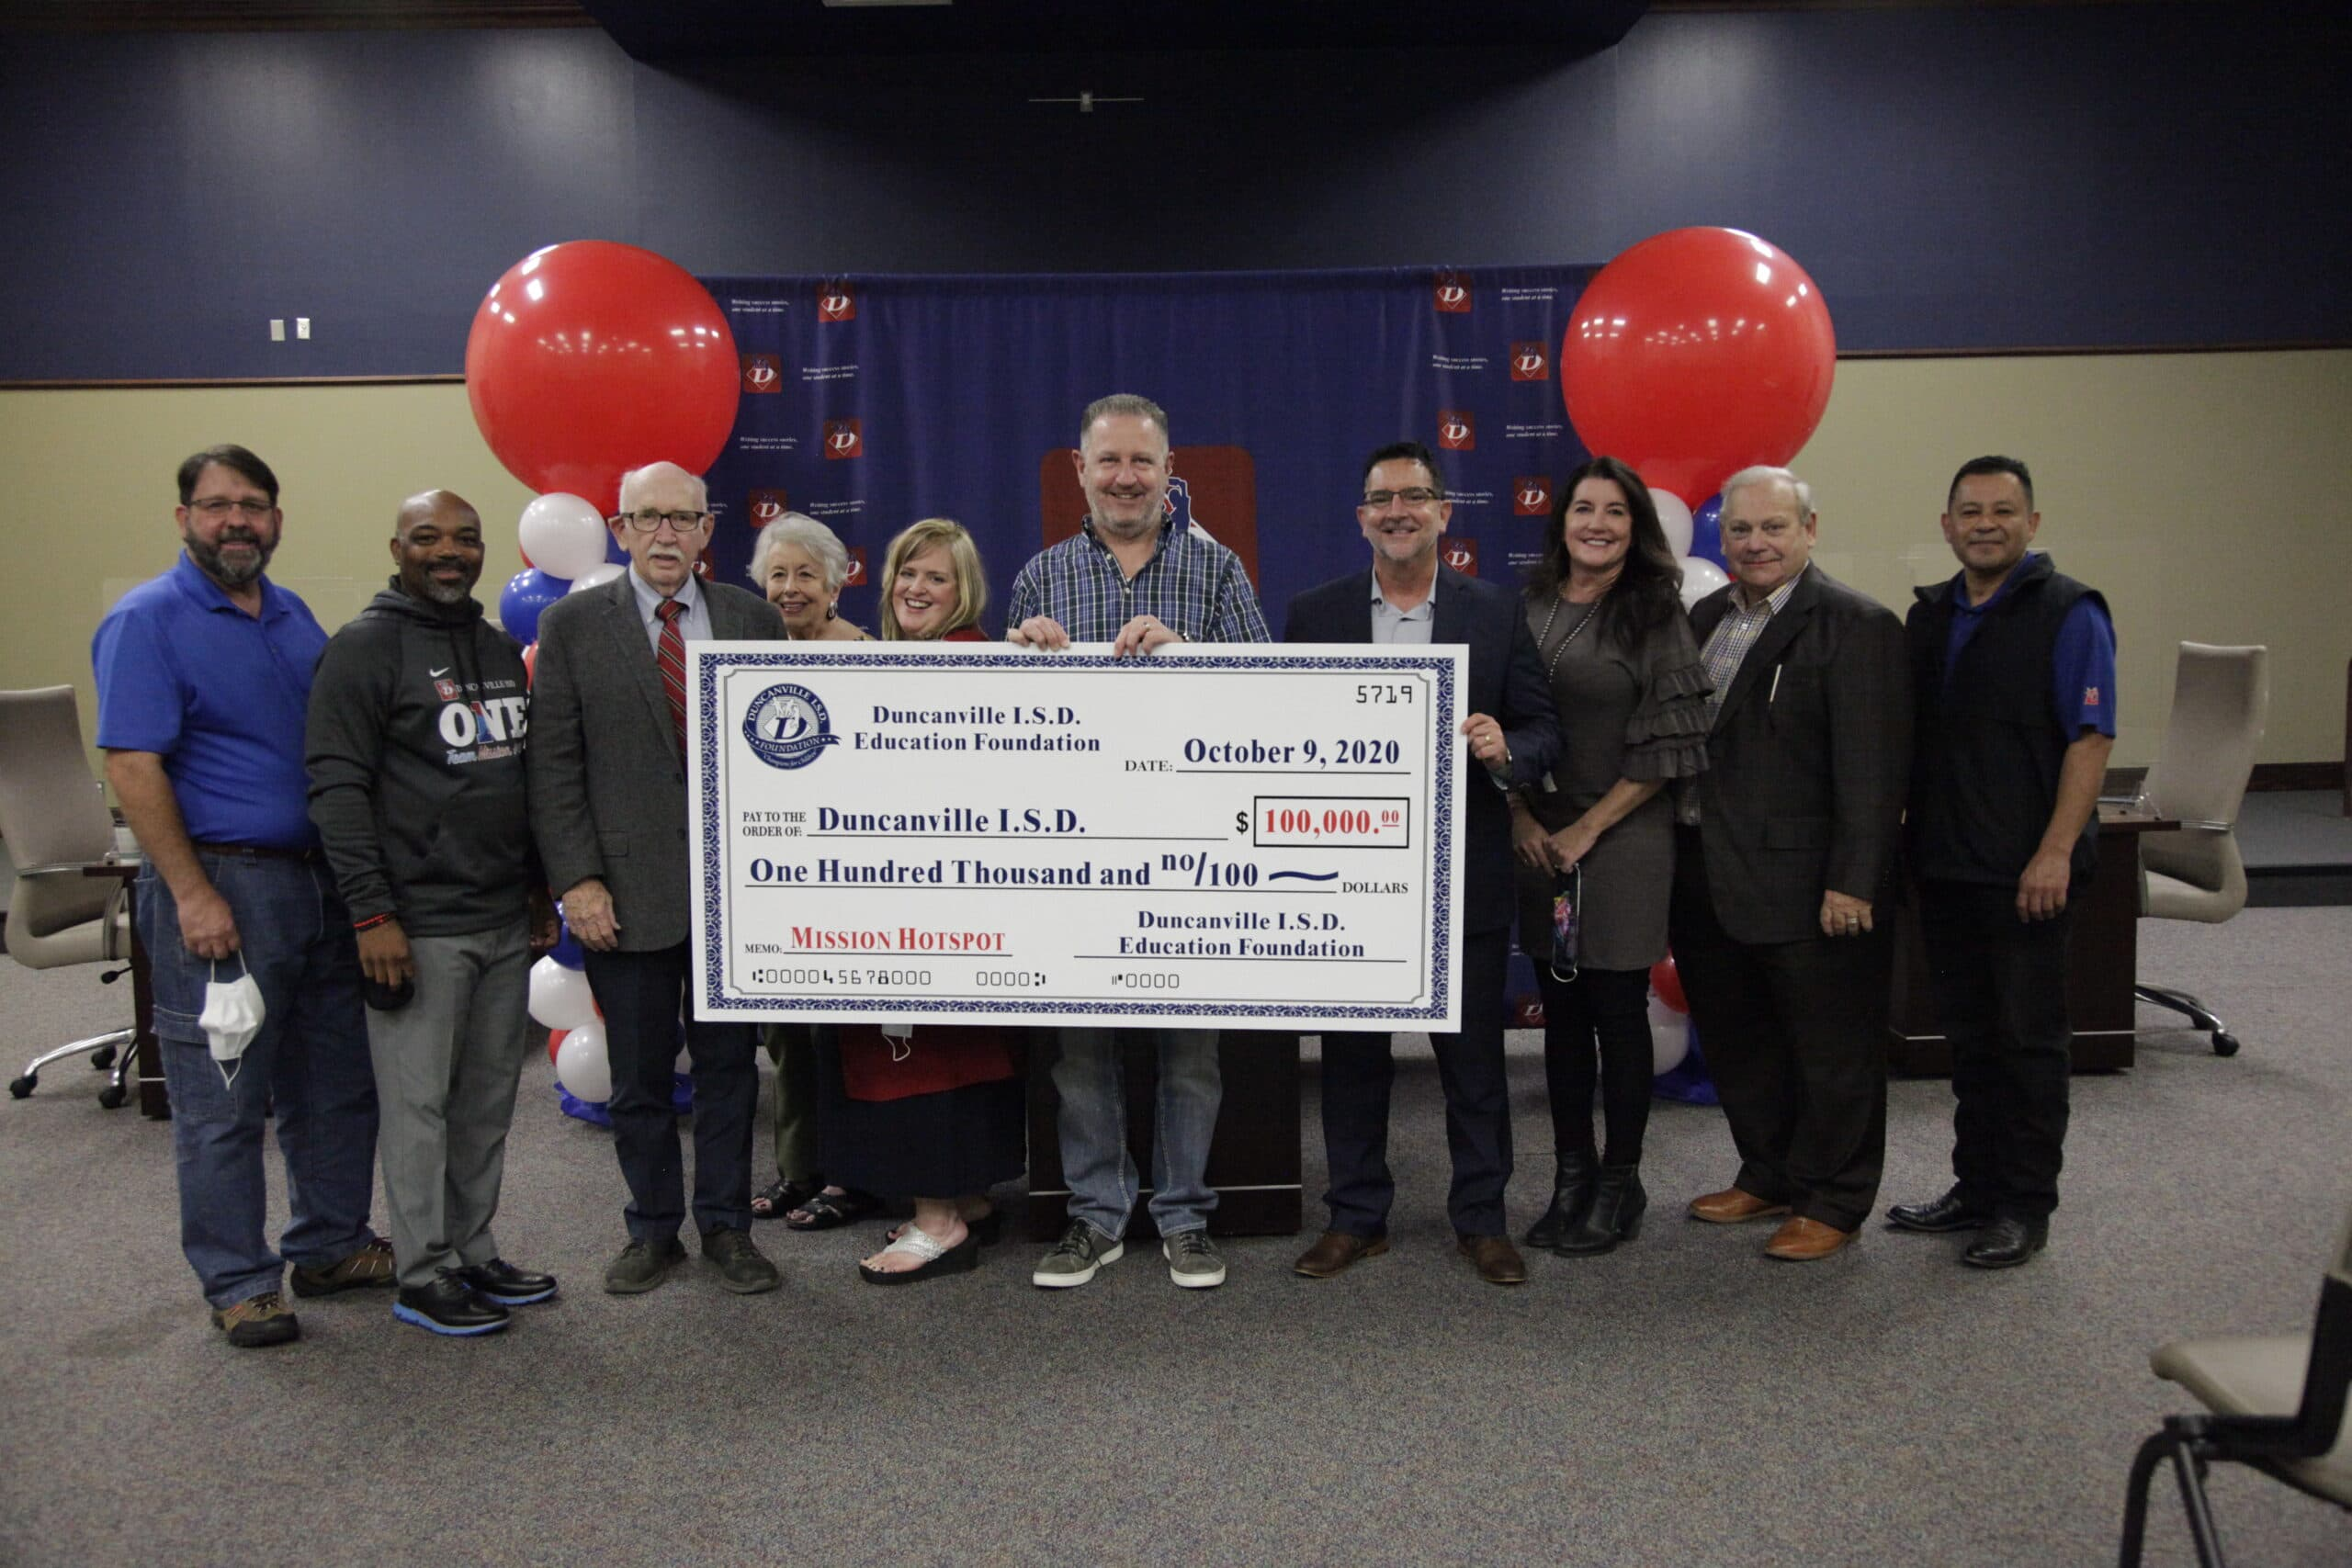 Duncanville ISD receives technology donation